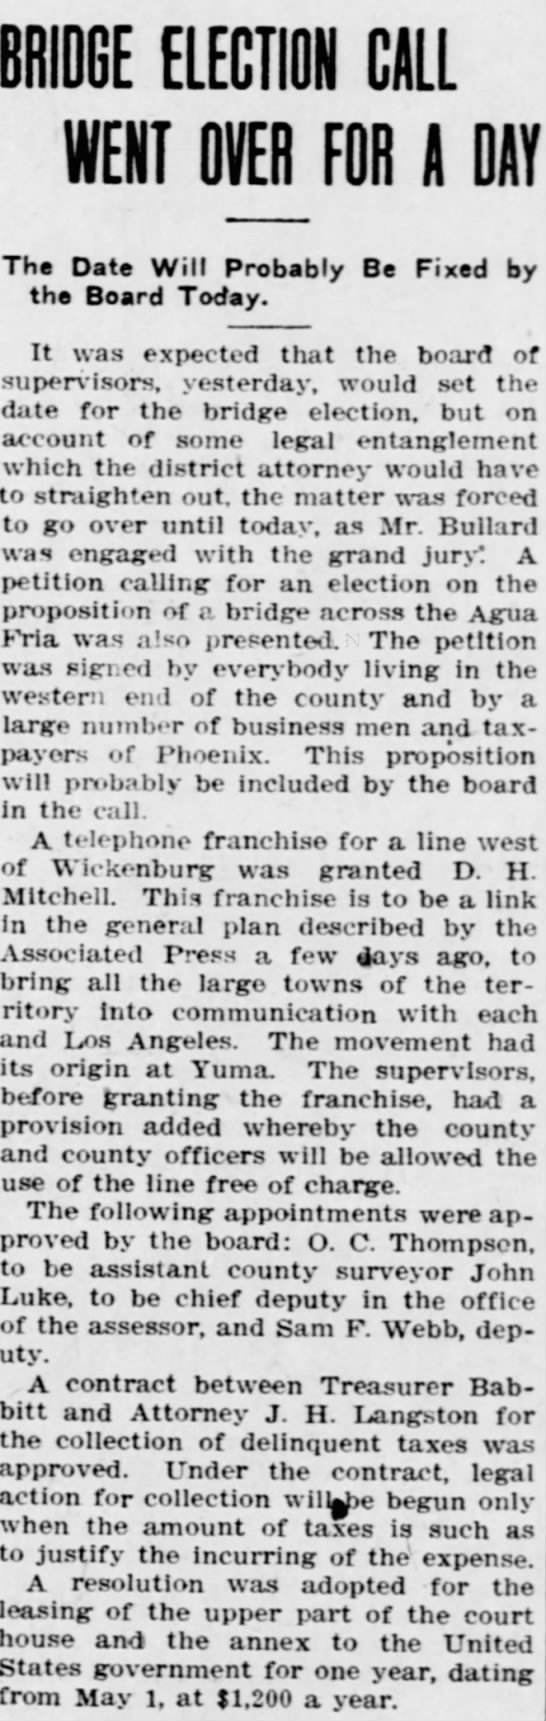 Bridge Election Call Went Over for a Day, Arizona Republican 10 (April 20, 1909). -